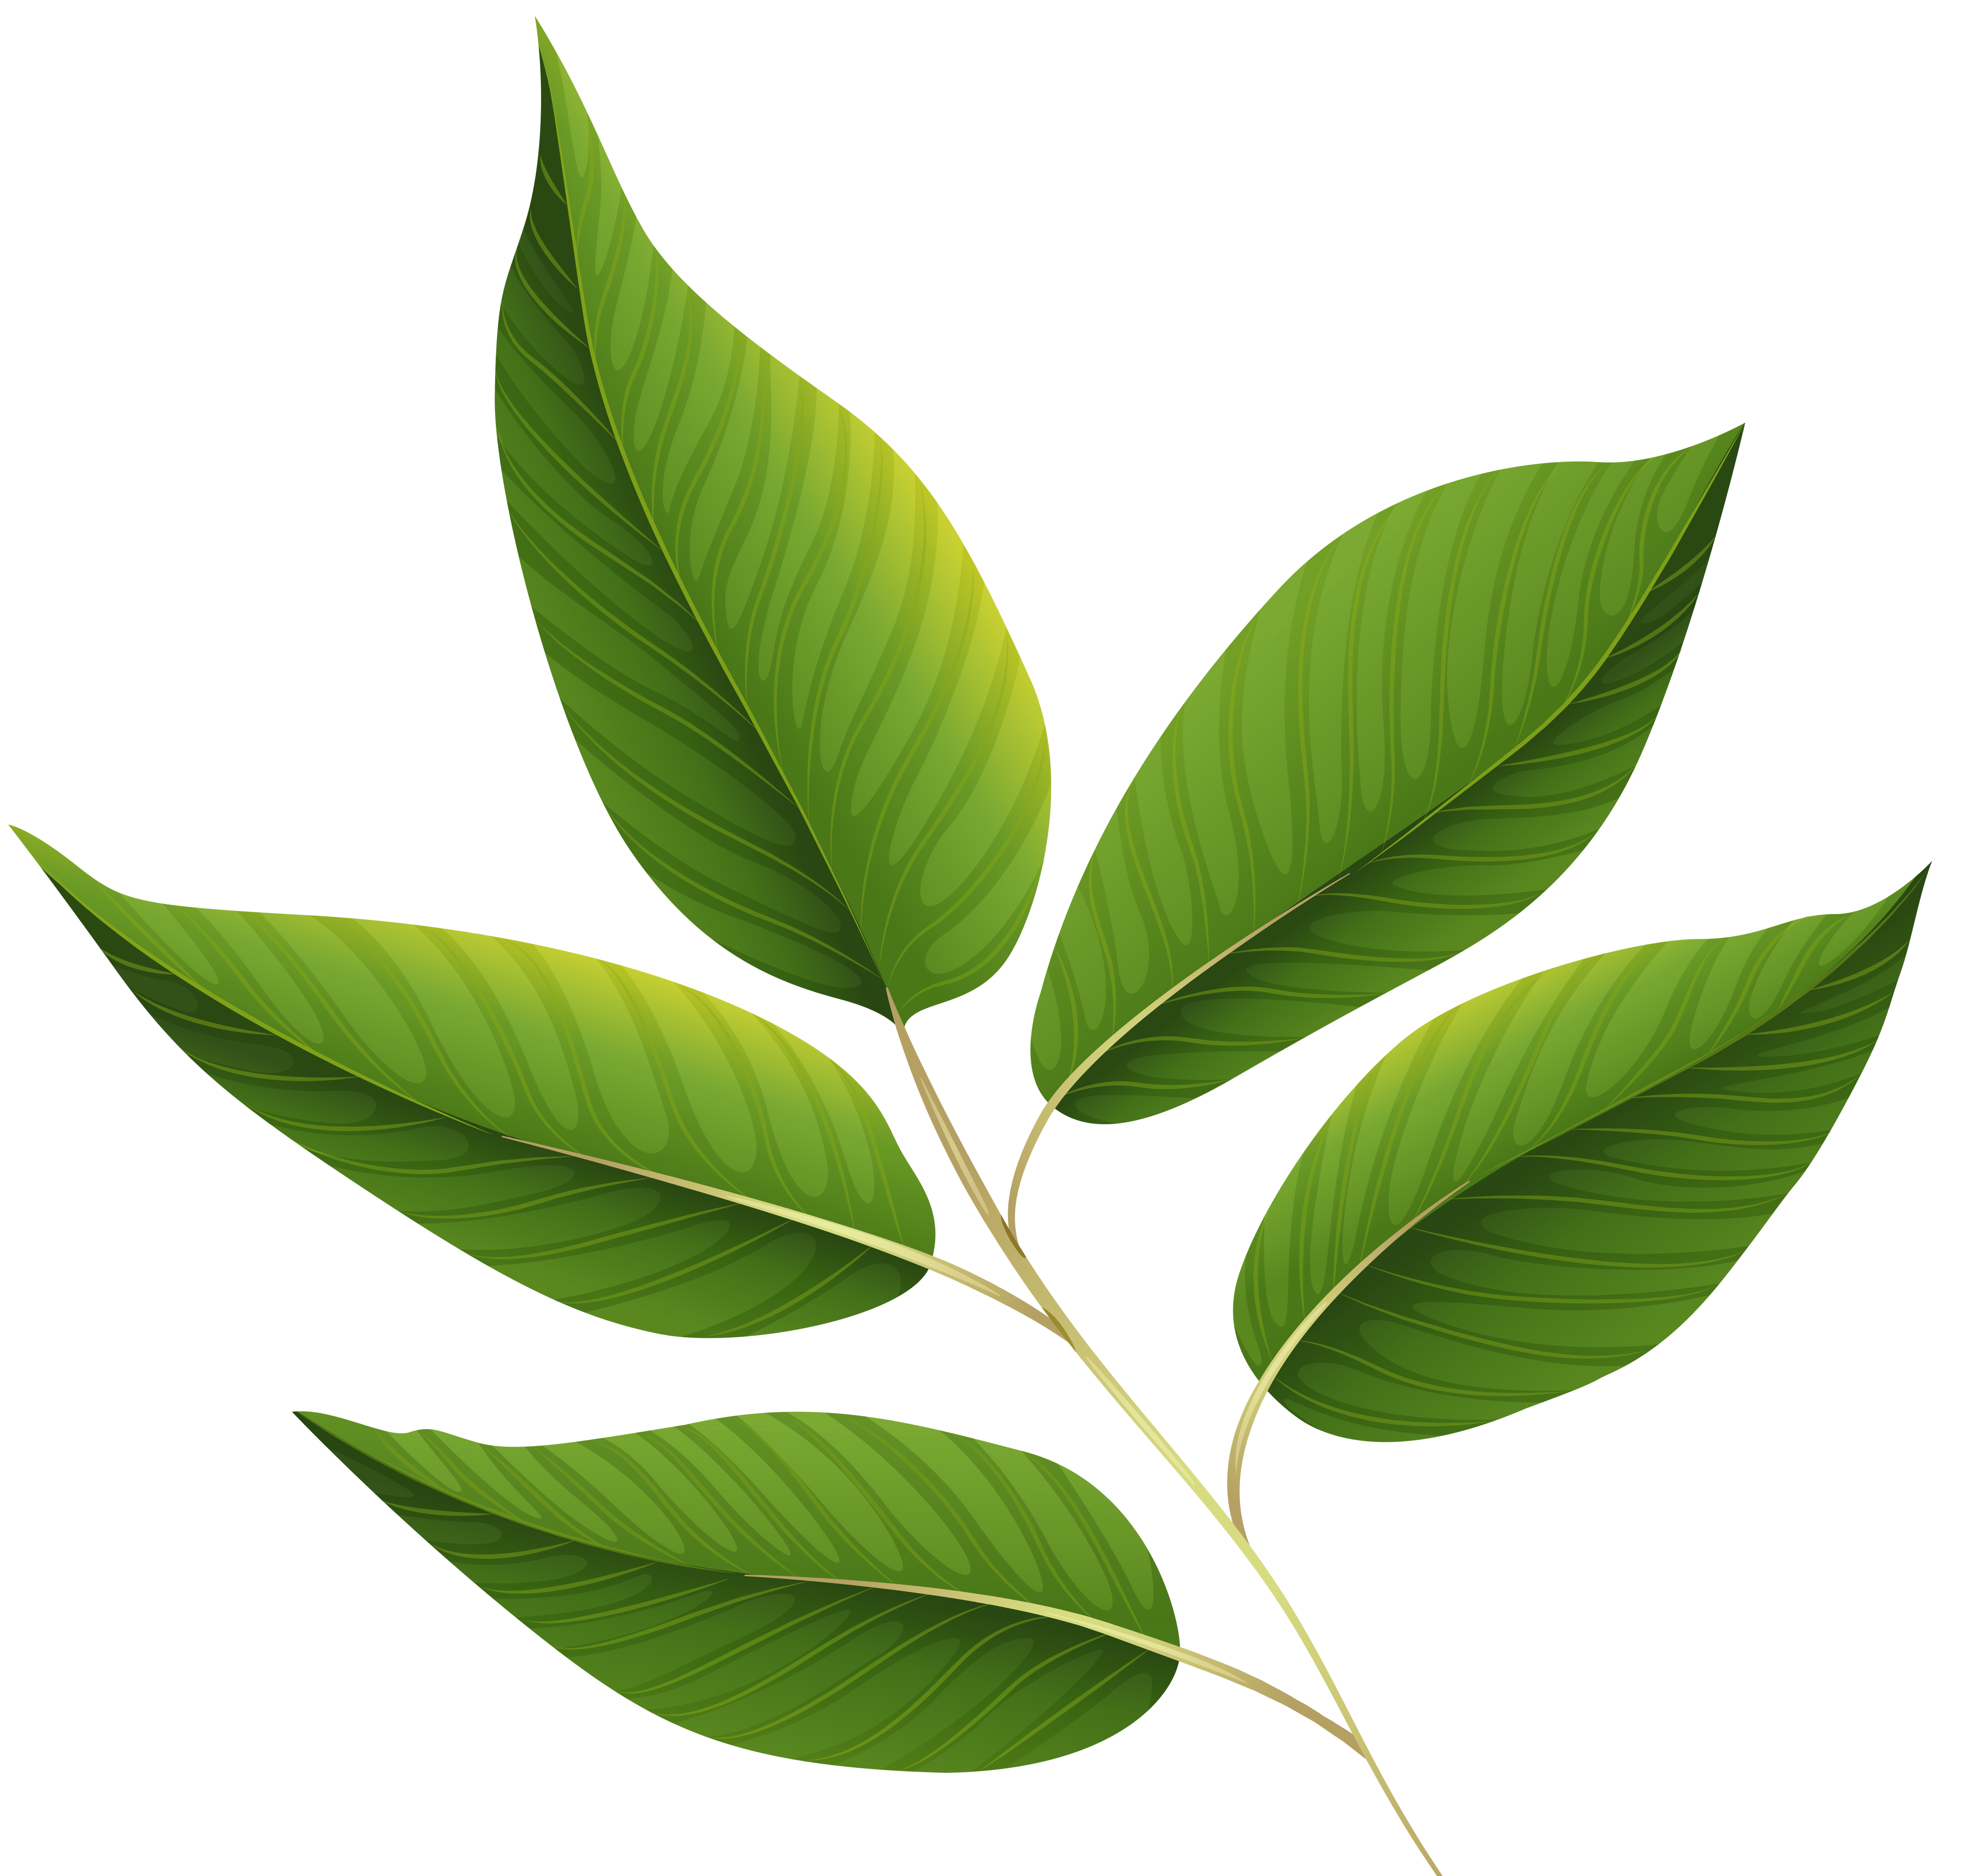 Leaves clipart png. Green image gallery yopriceville